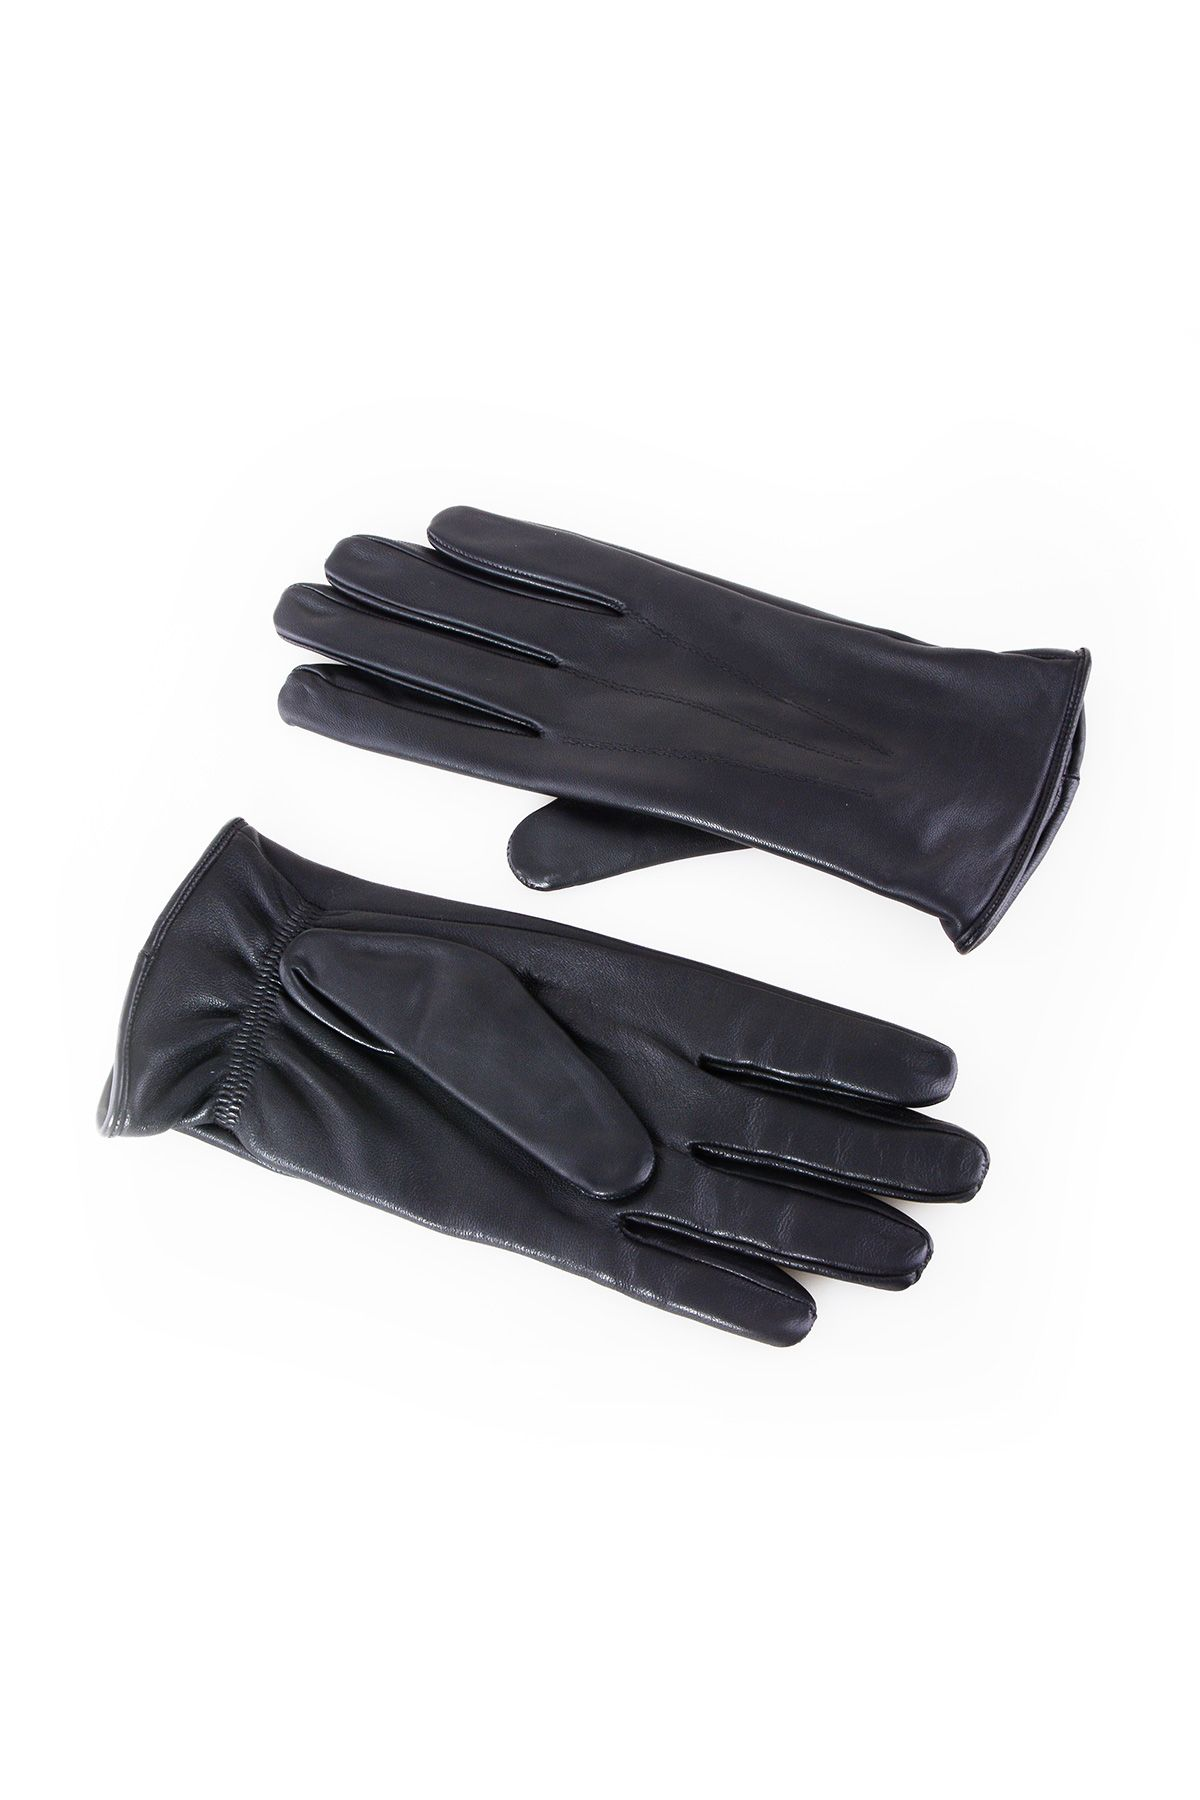 Pegia Men's Classic Leather Gloves 19EE01 Black